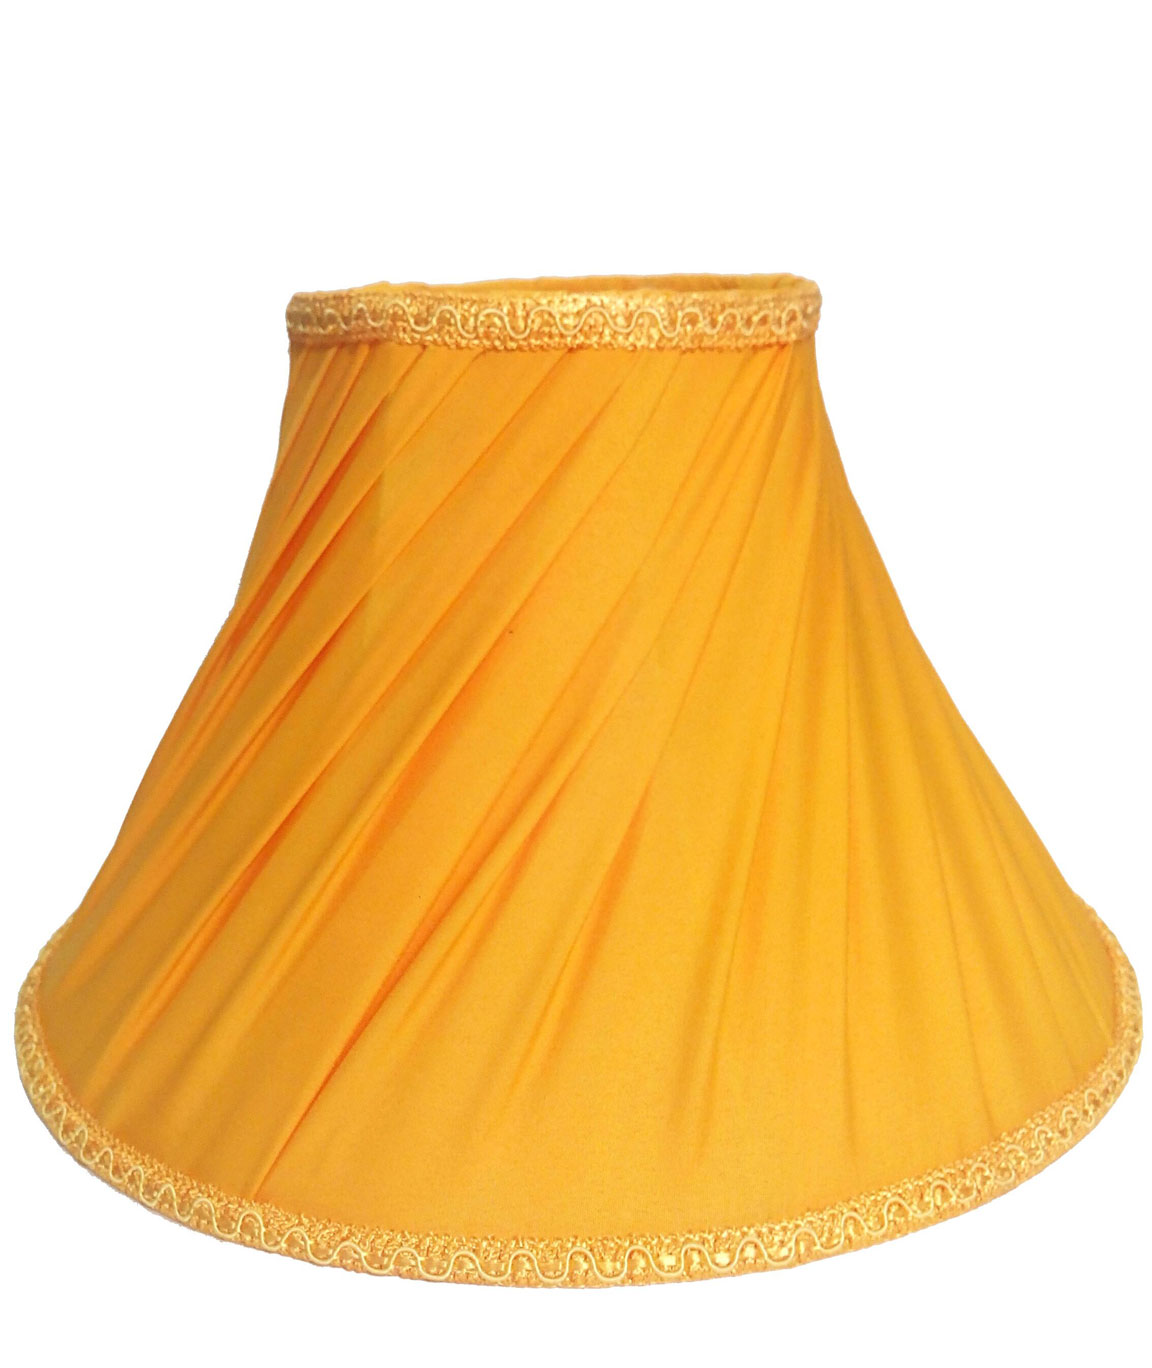 RDC 12 Inches Round Slanting Pleated Yellow with Lace Border Lamp Shade for Table Lamp